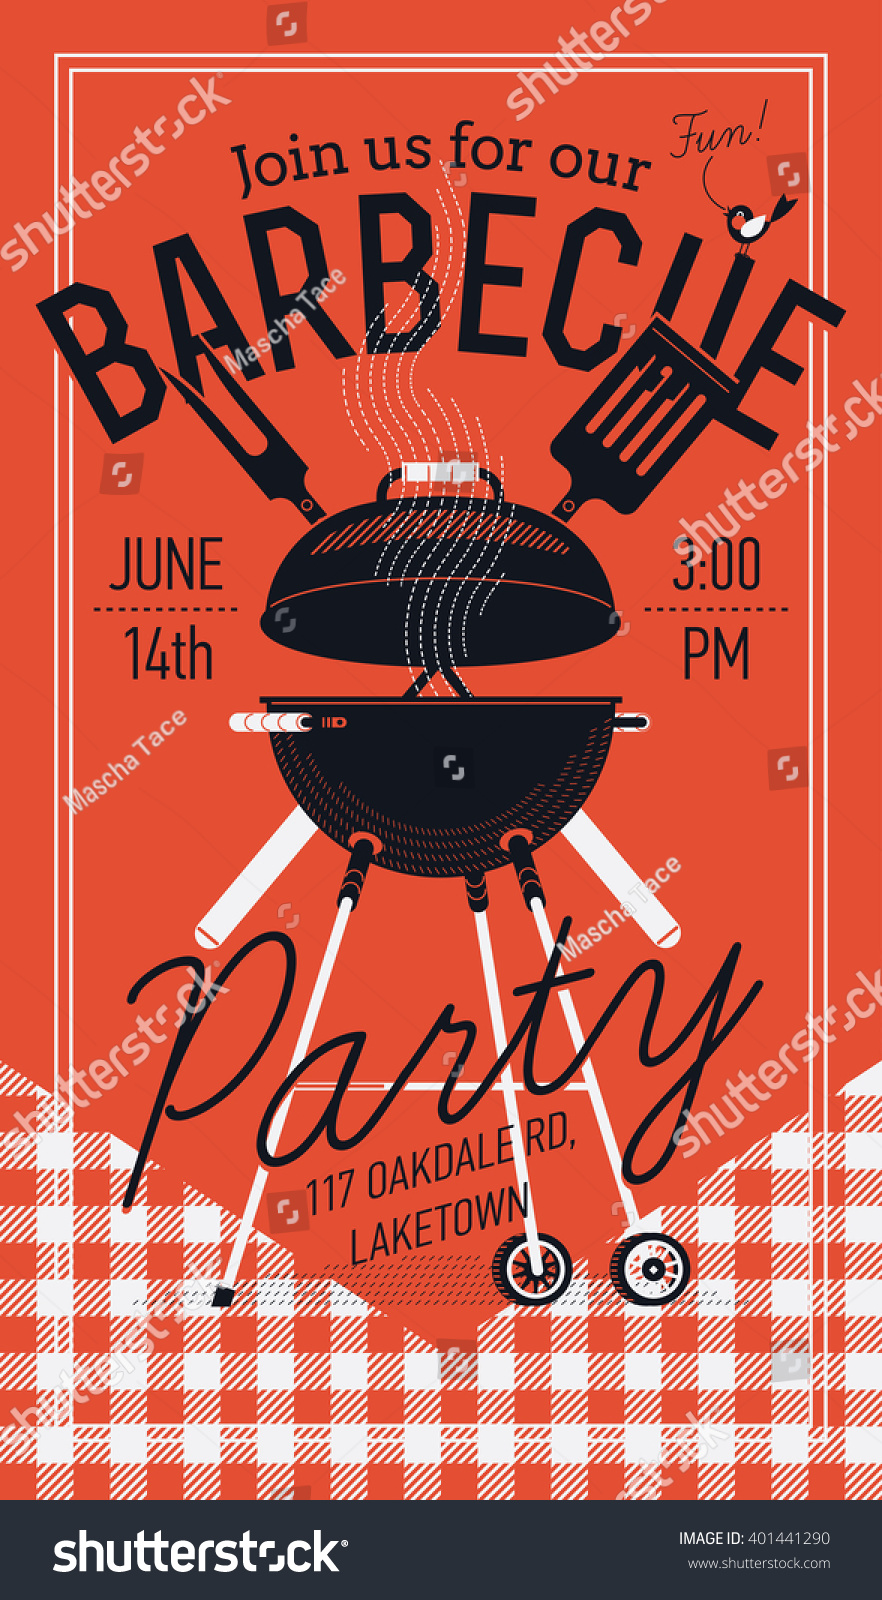 lovely vector flyer or poster template on barbecue party barbecue cookout event spring or